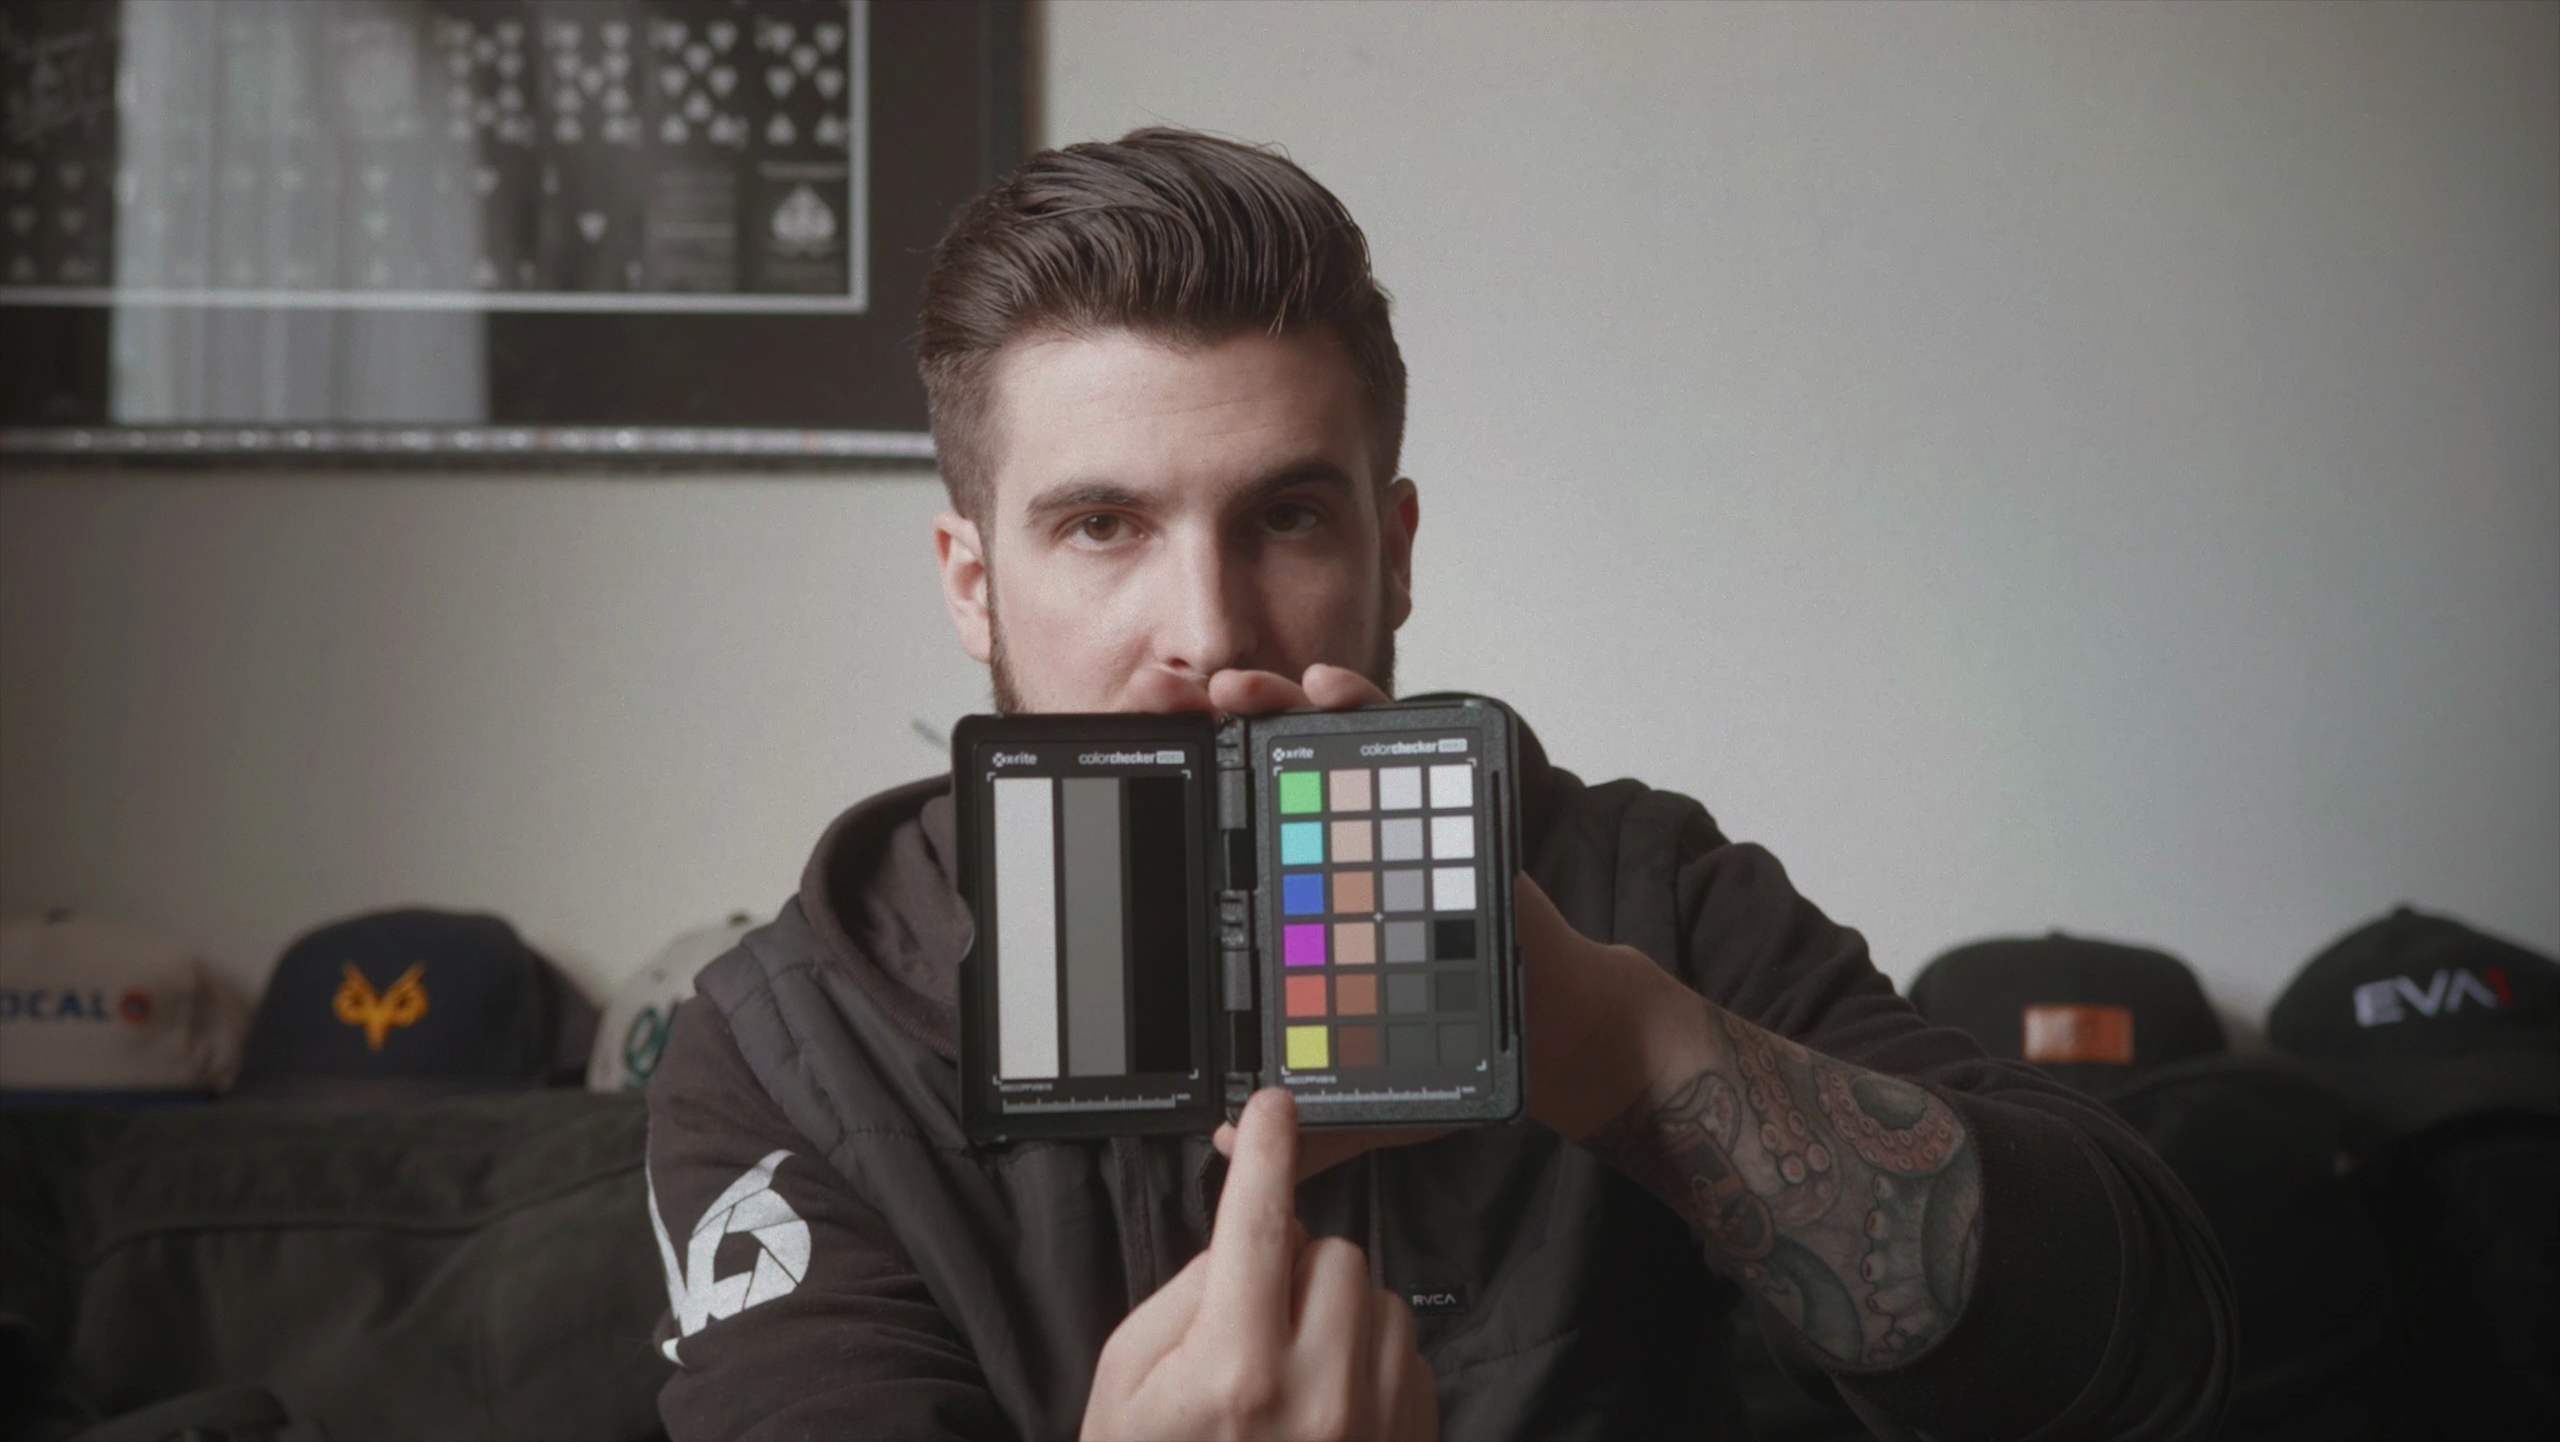 Review: The i1 Filmmaker Kit and Colorchecker Video from X-Rite 3